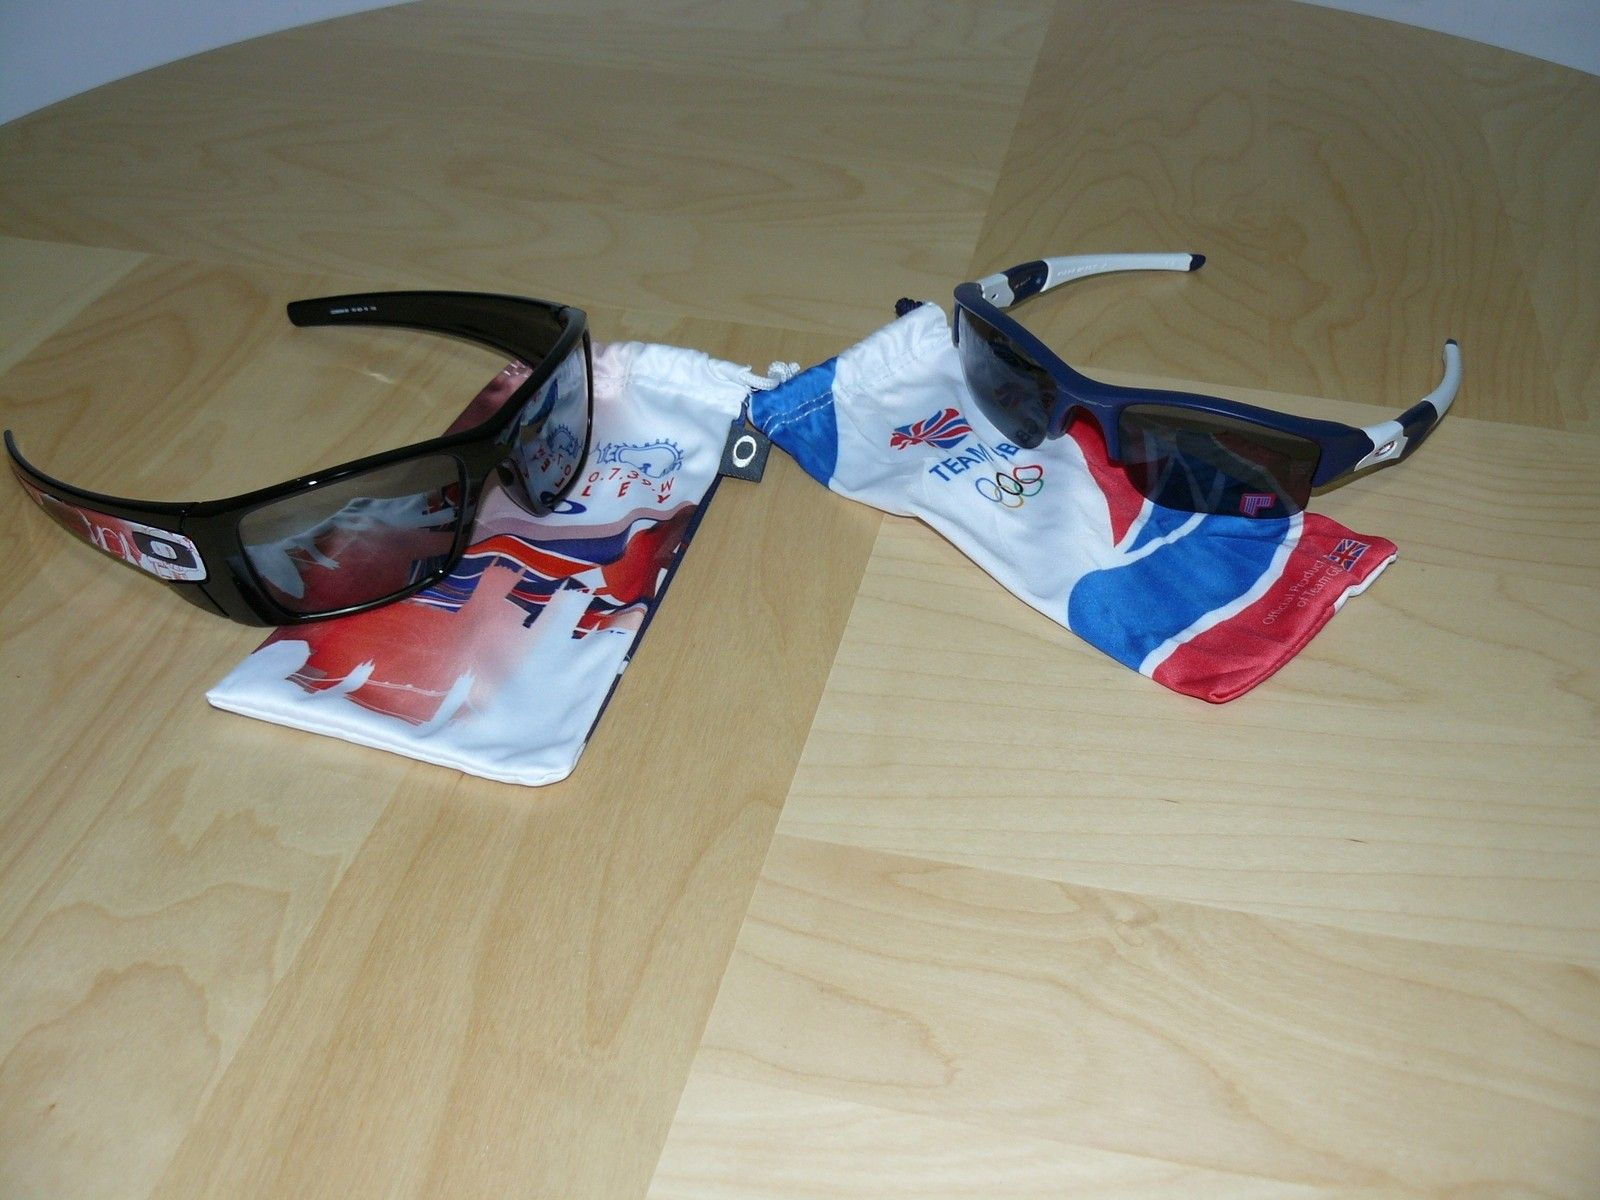 New Items in DOakley's collection - 2012 Olimpics.JPG